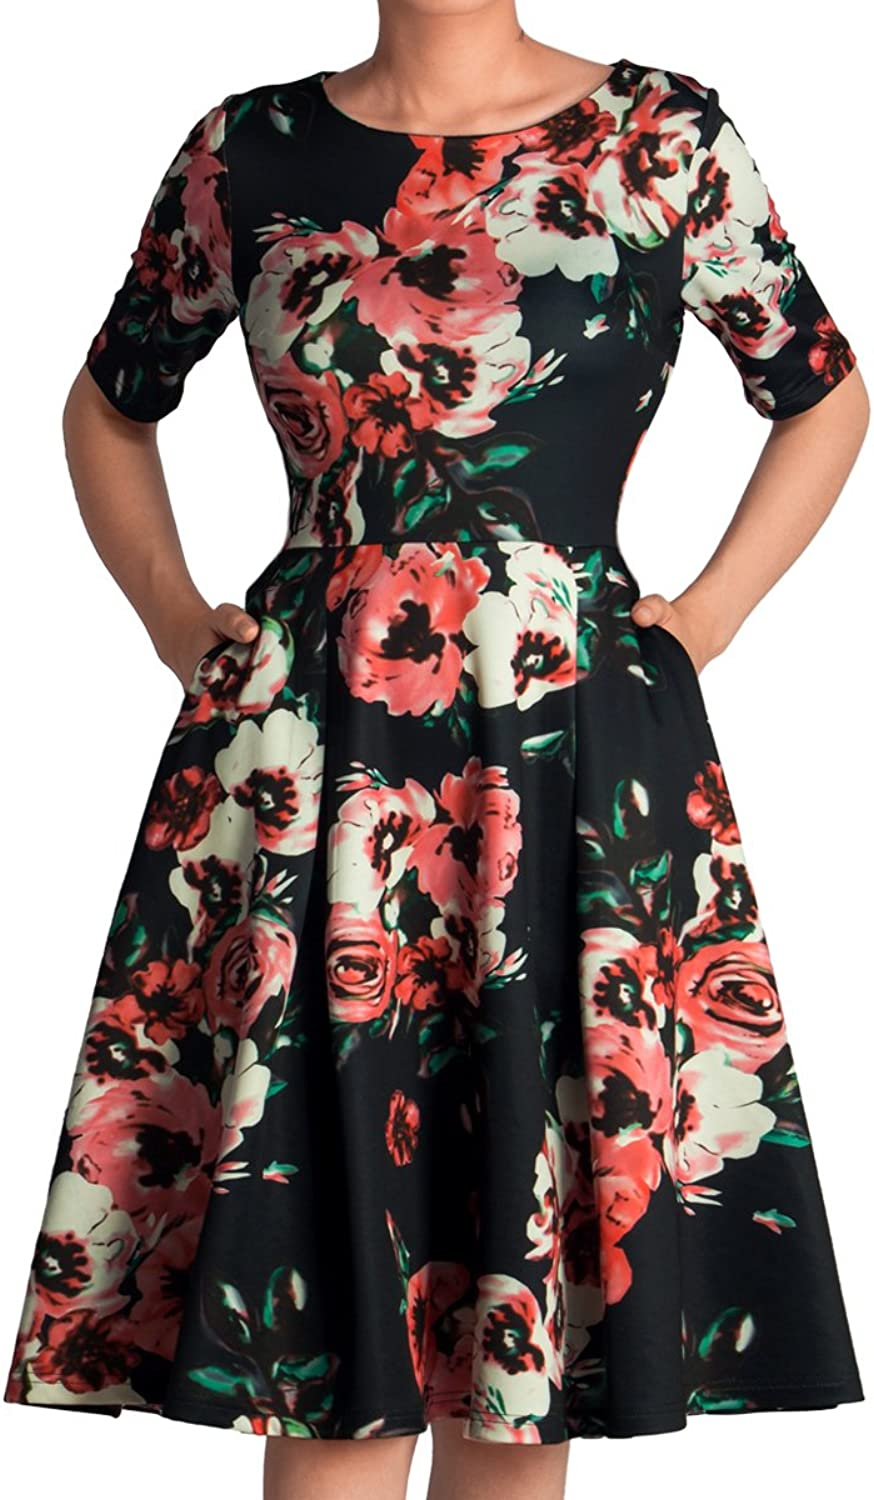 GODTLIV Women's Vintage Tea DressesFloral Print Fit Flared Casual Work Stretch Swing Midi Dress with Pockets 00001